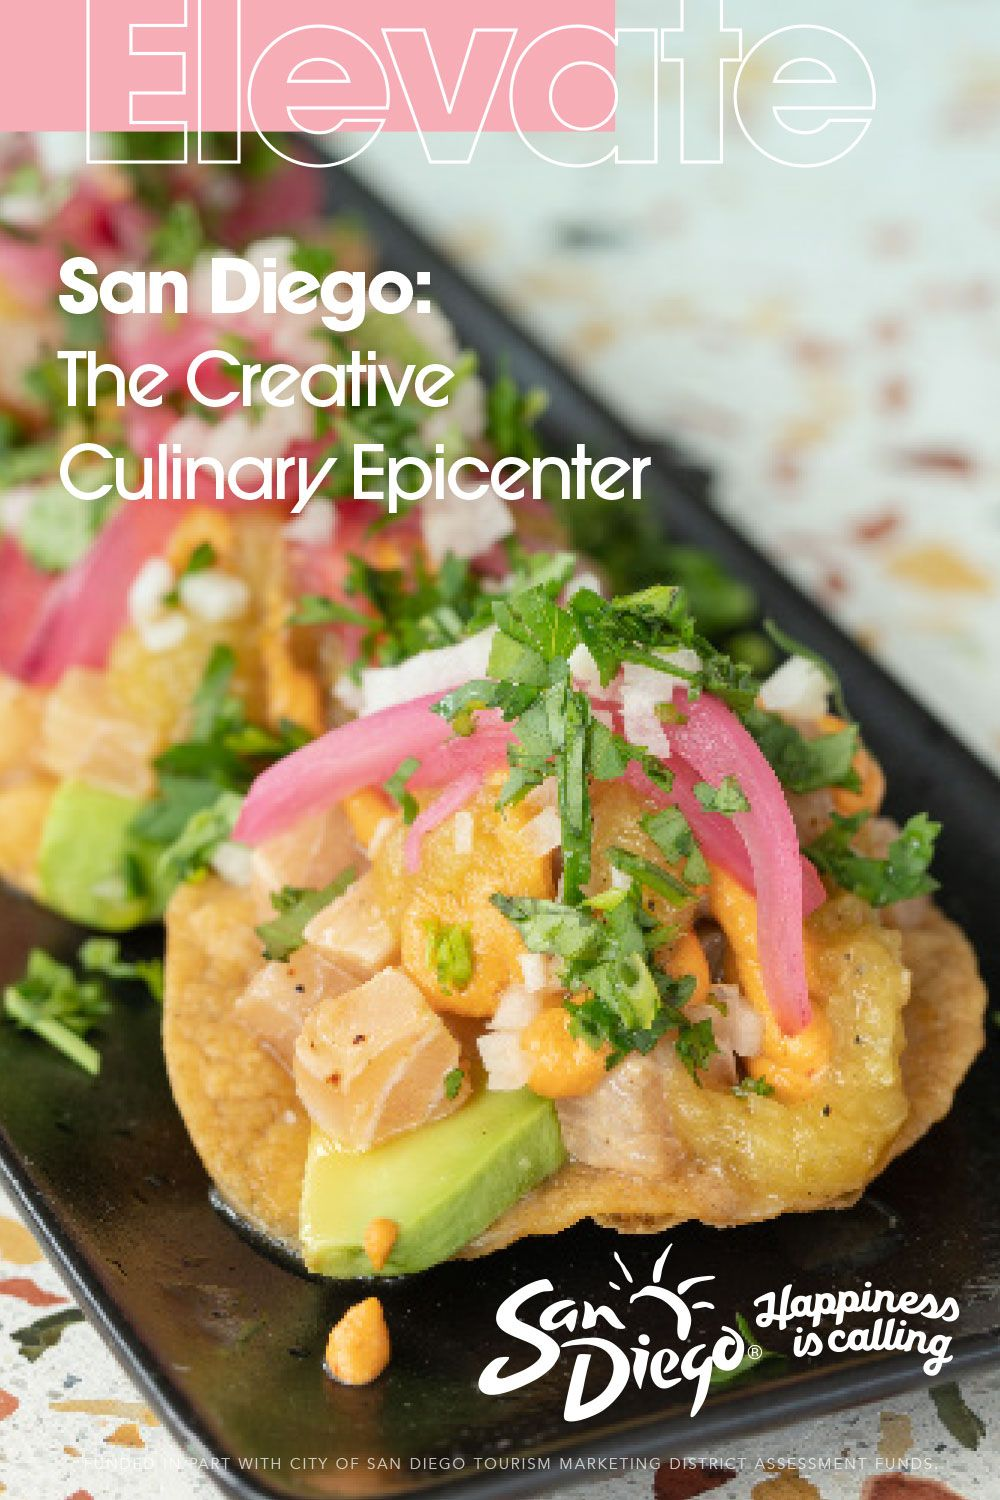 San Diego The Creative Culinary Epicenter in 2020